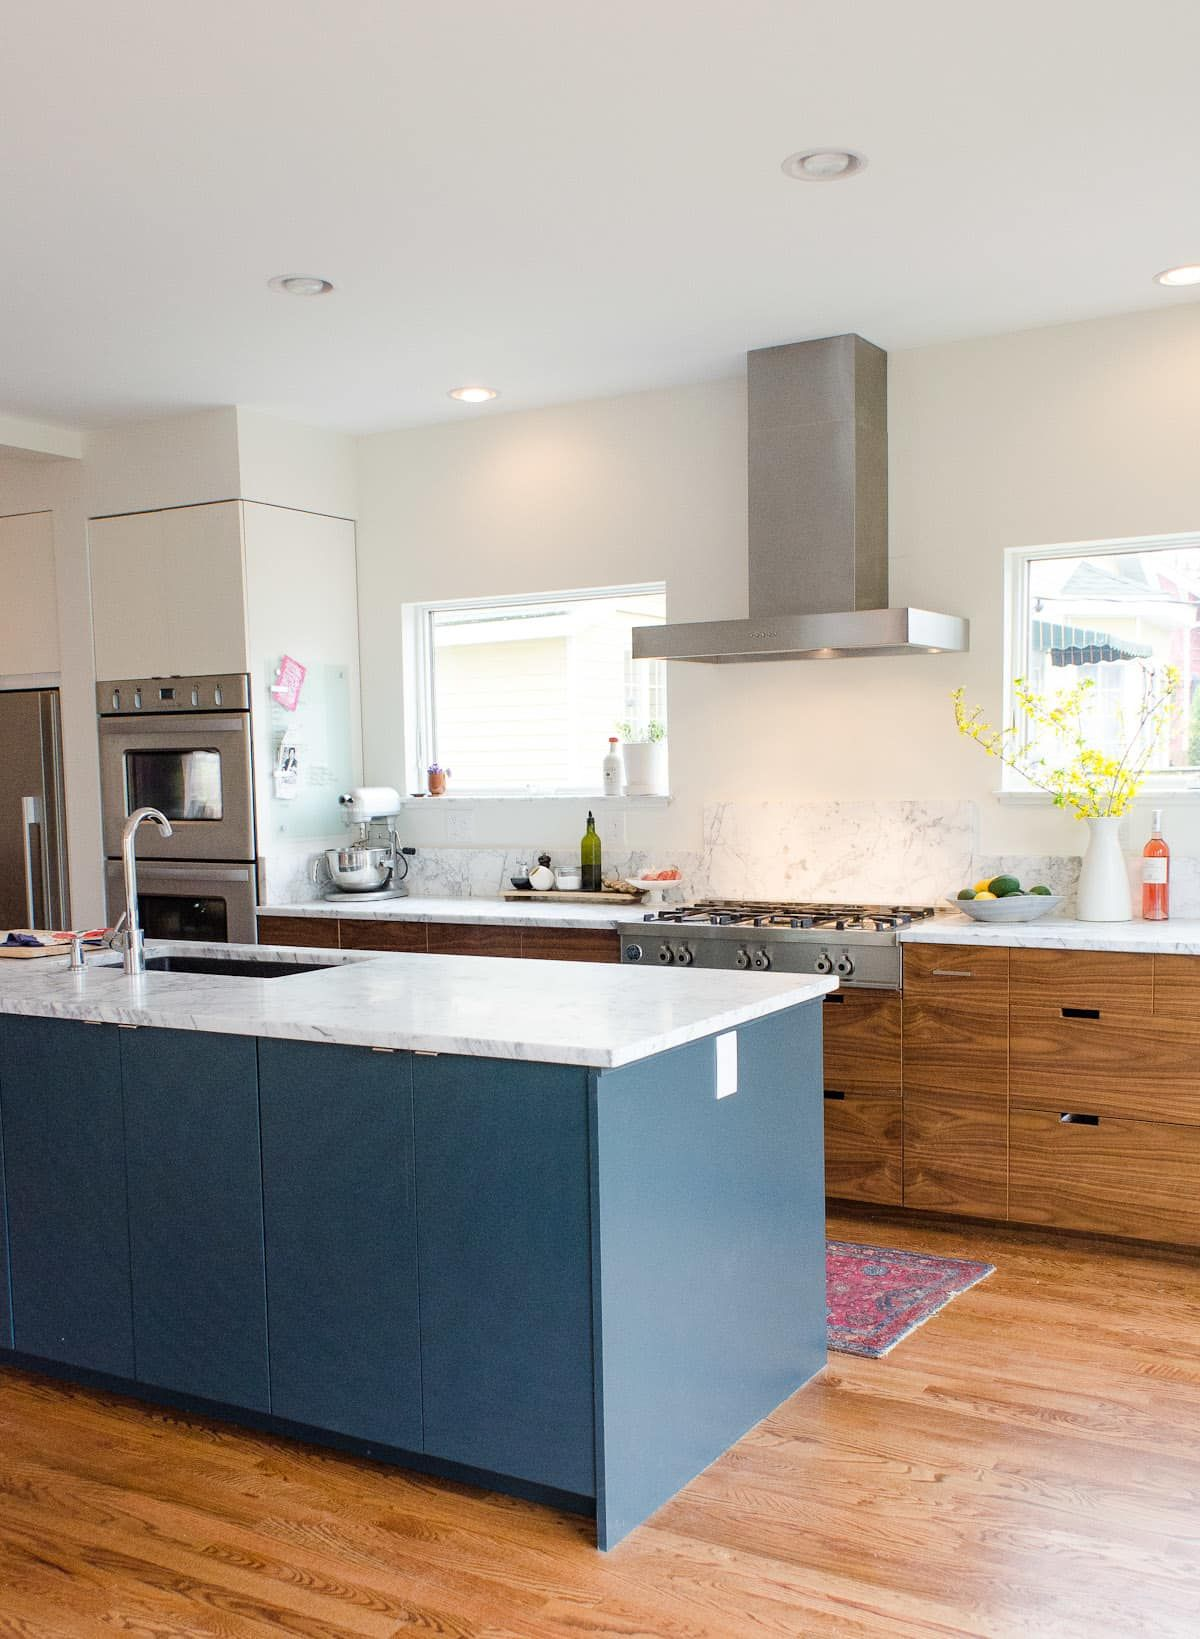 5 Things Our Editor In Chief Learned While Buying An Ikea Kitchen Ikea Kitchen Design Ikea Kitchen Remodel Kitchen Remodel Layout